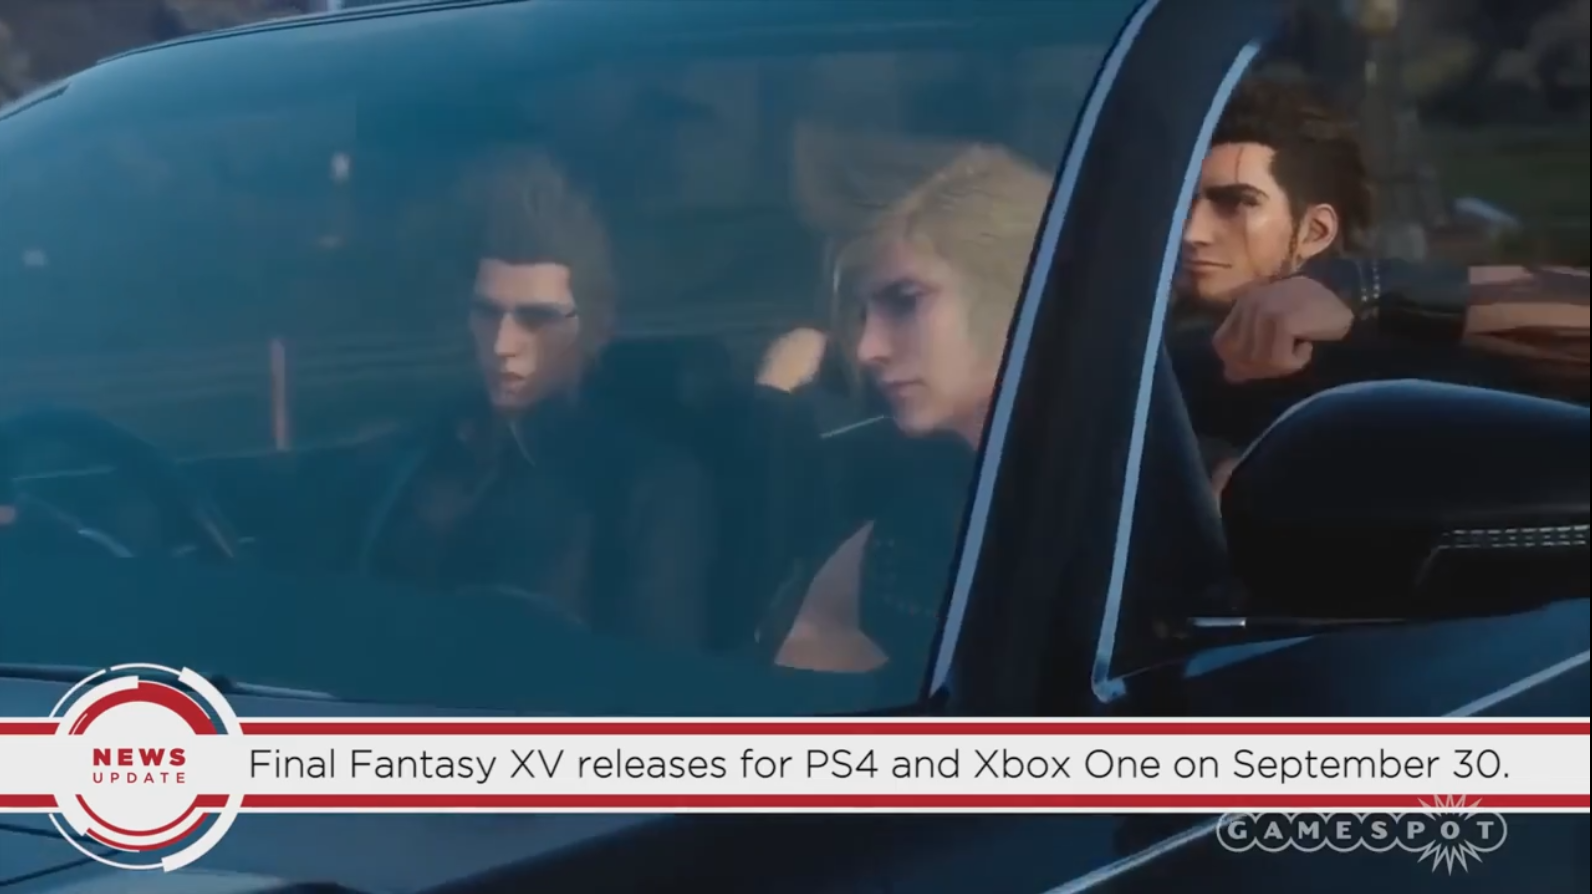 Final Fantasy XV Releasing September 30, Says Now-Private GameSpot Video